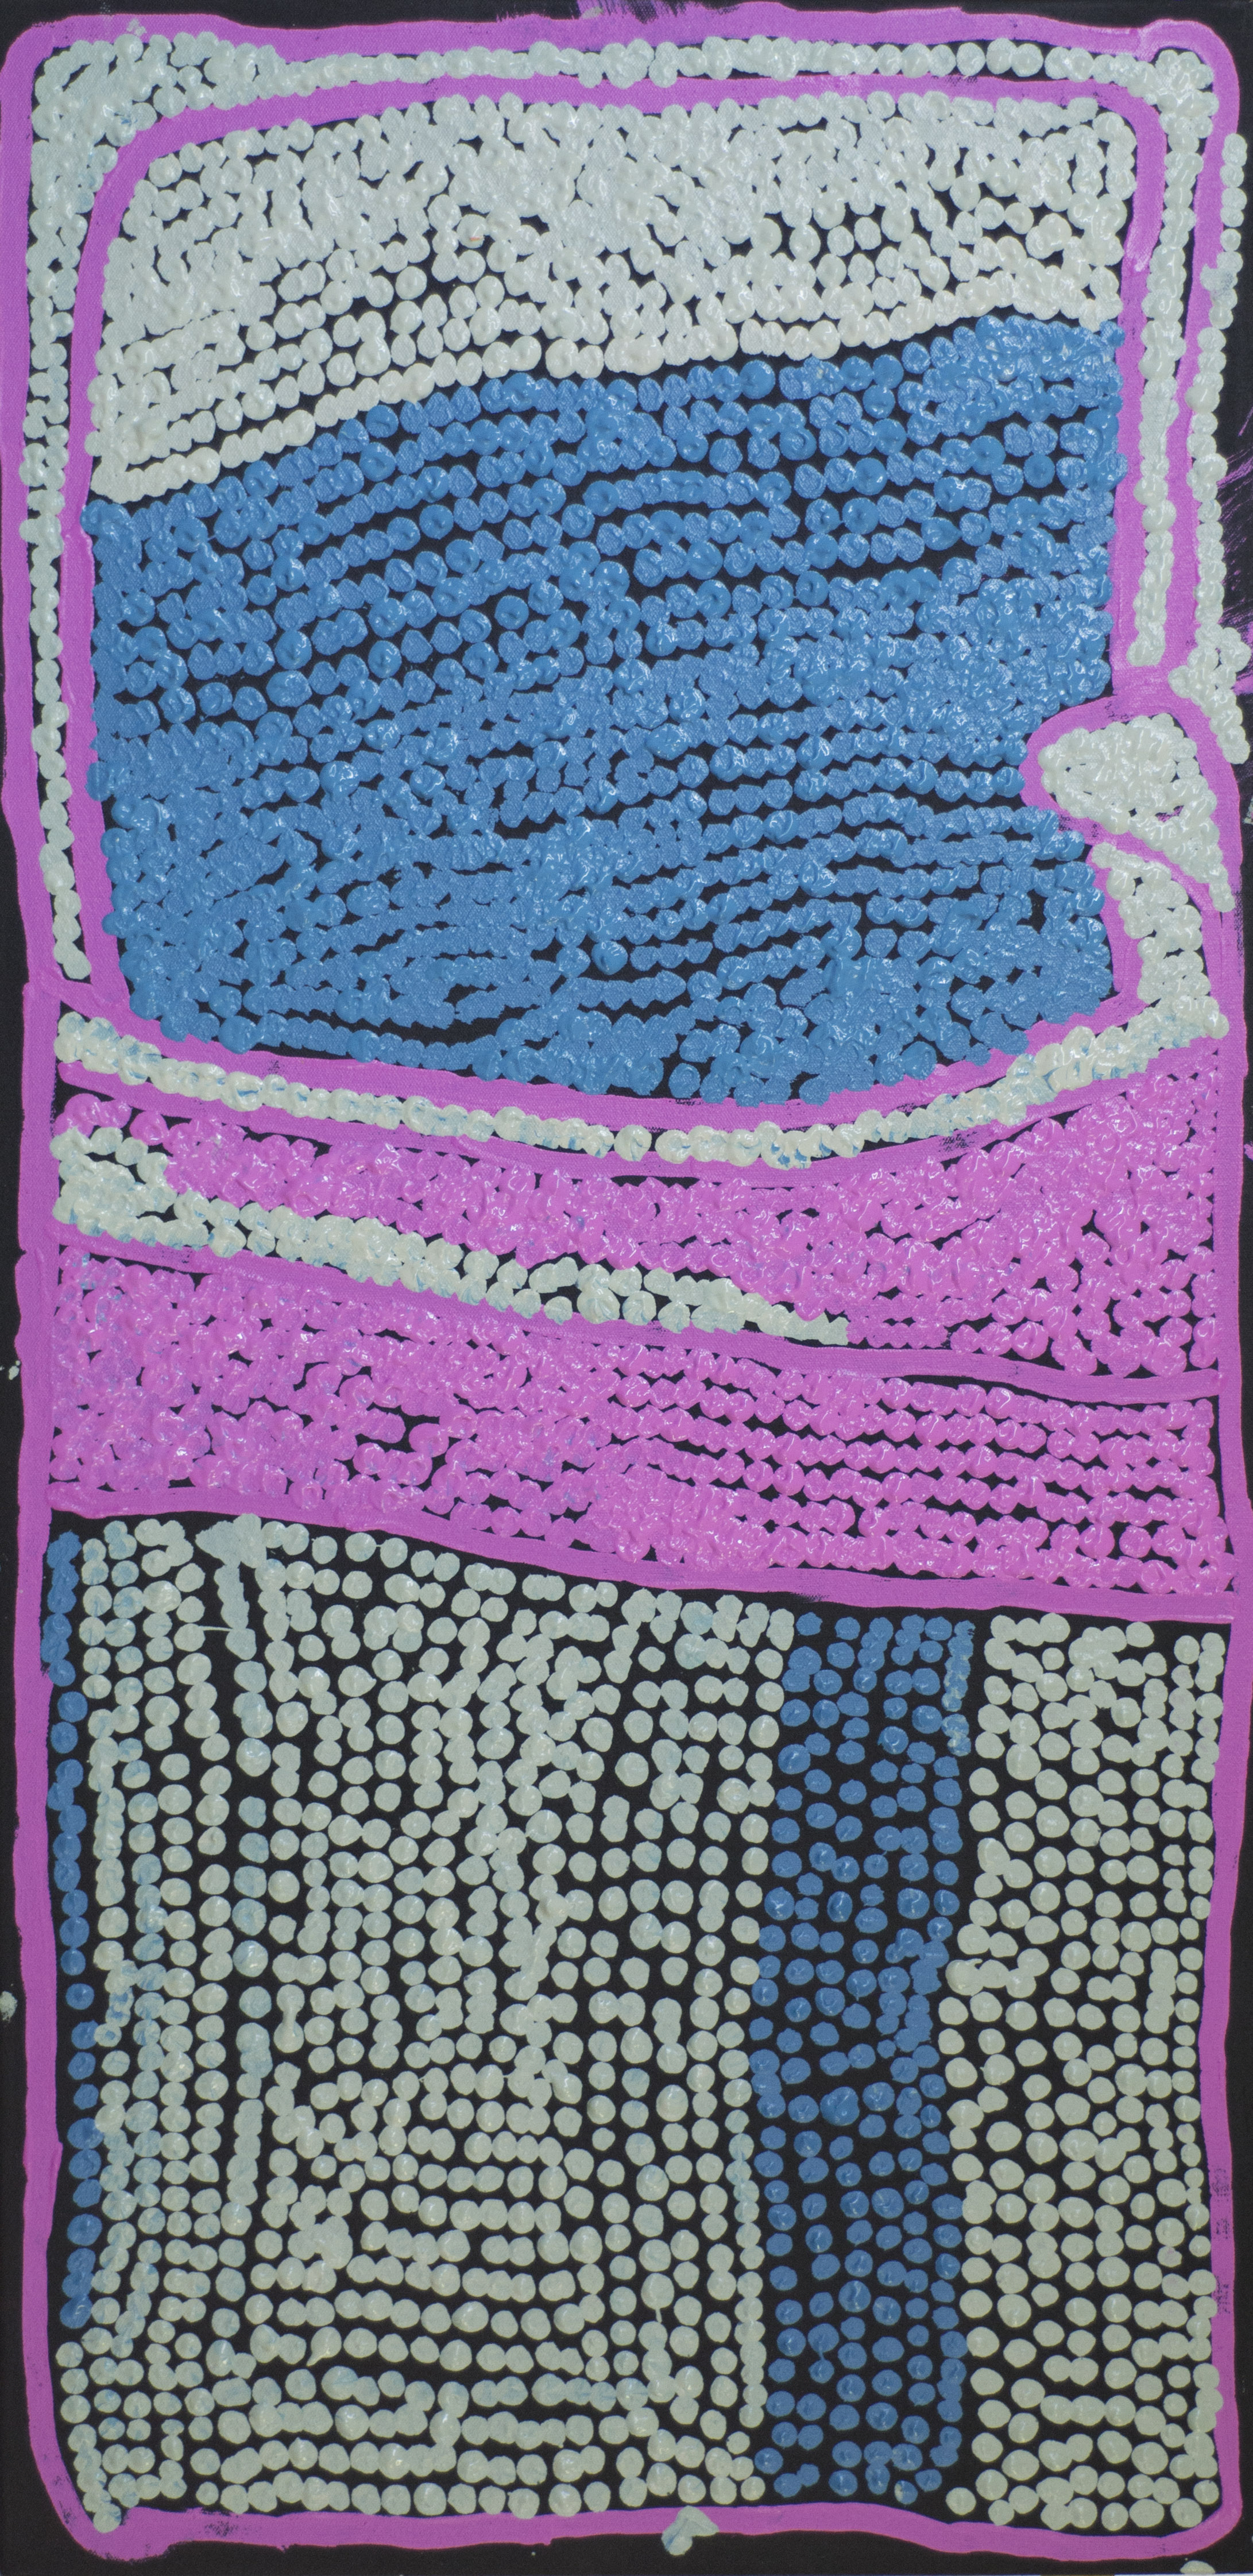 Esther Giles Purrungu, Python Story 50.5 x 101.5 cm Acrylic on canvas Catalog #15-150  EMAIL INQUIRY